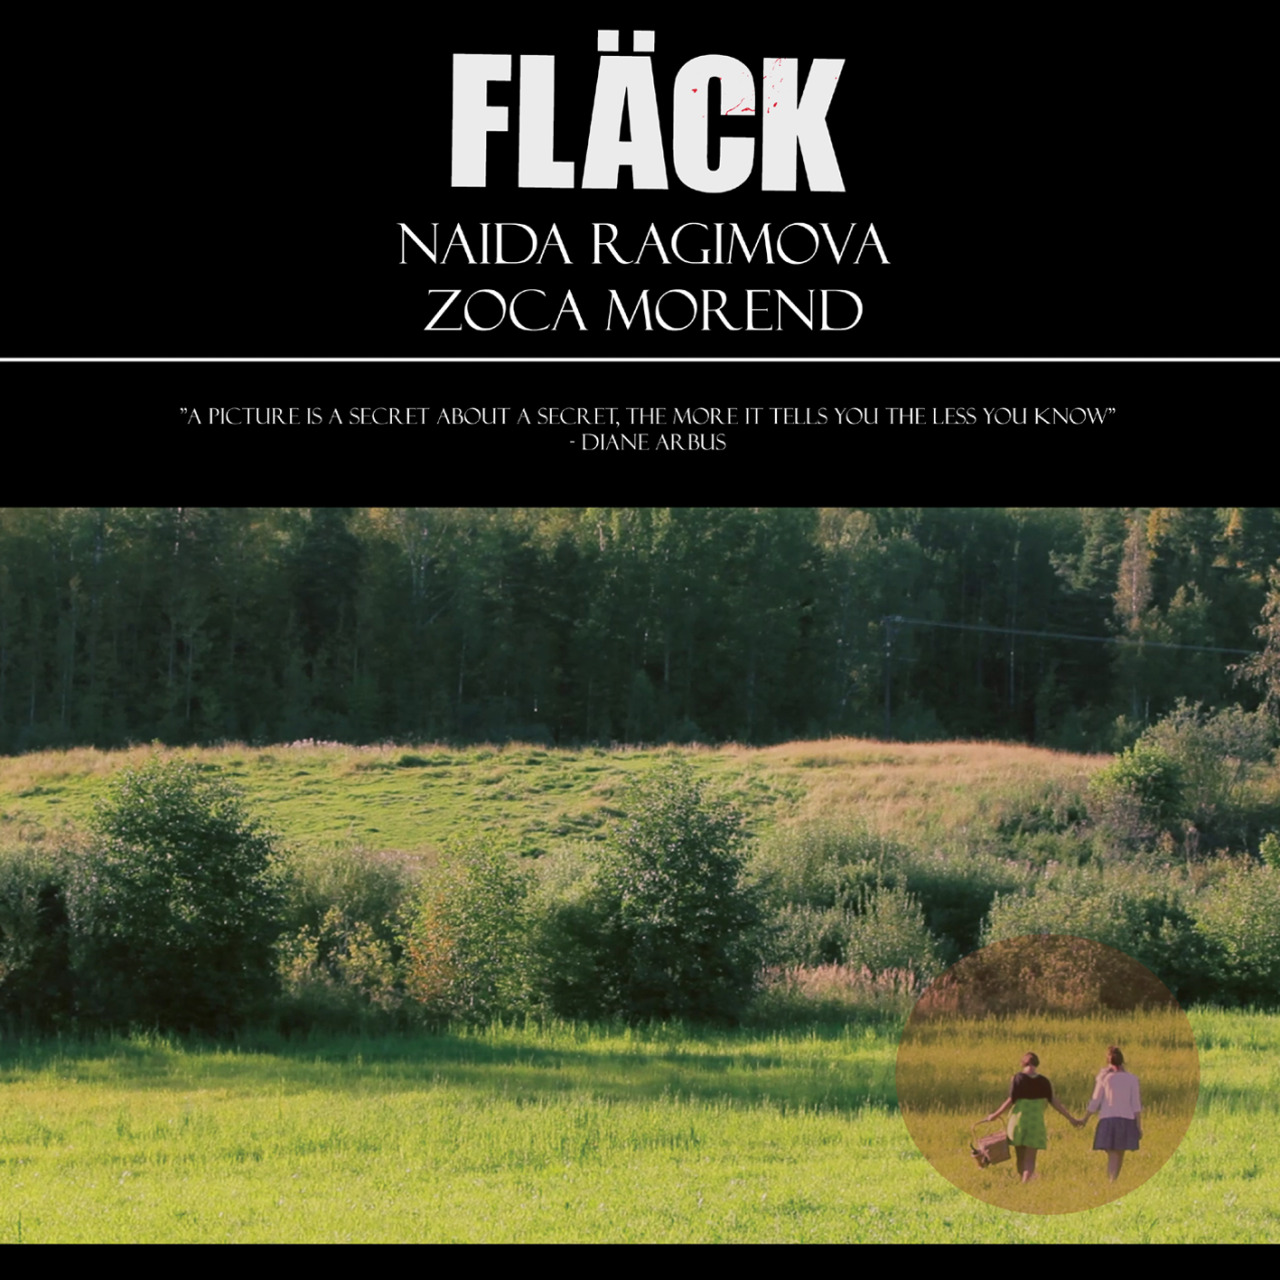 FLÄCK SOUNDTRACK 01 Sovrum Dag Written/Produced by: Definition Baroque 02 Sovrum Natt Written/Produced by: Definition Baroque 03 FLÄCK Theme Song Written by: Zoca Morend Produced by: Definition Baroque